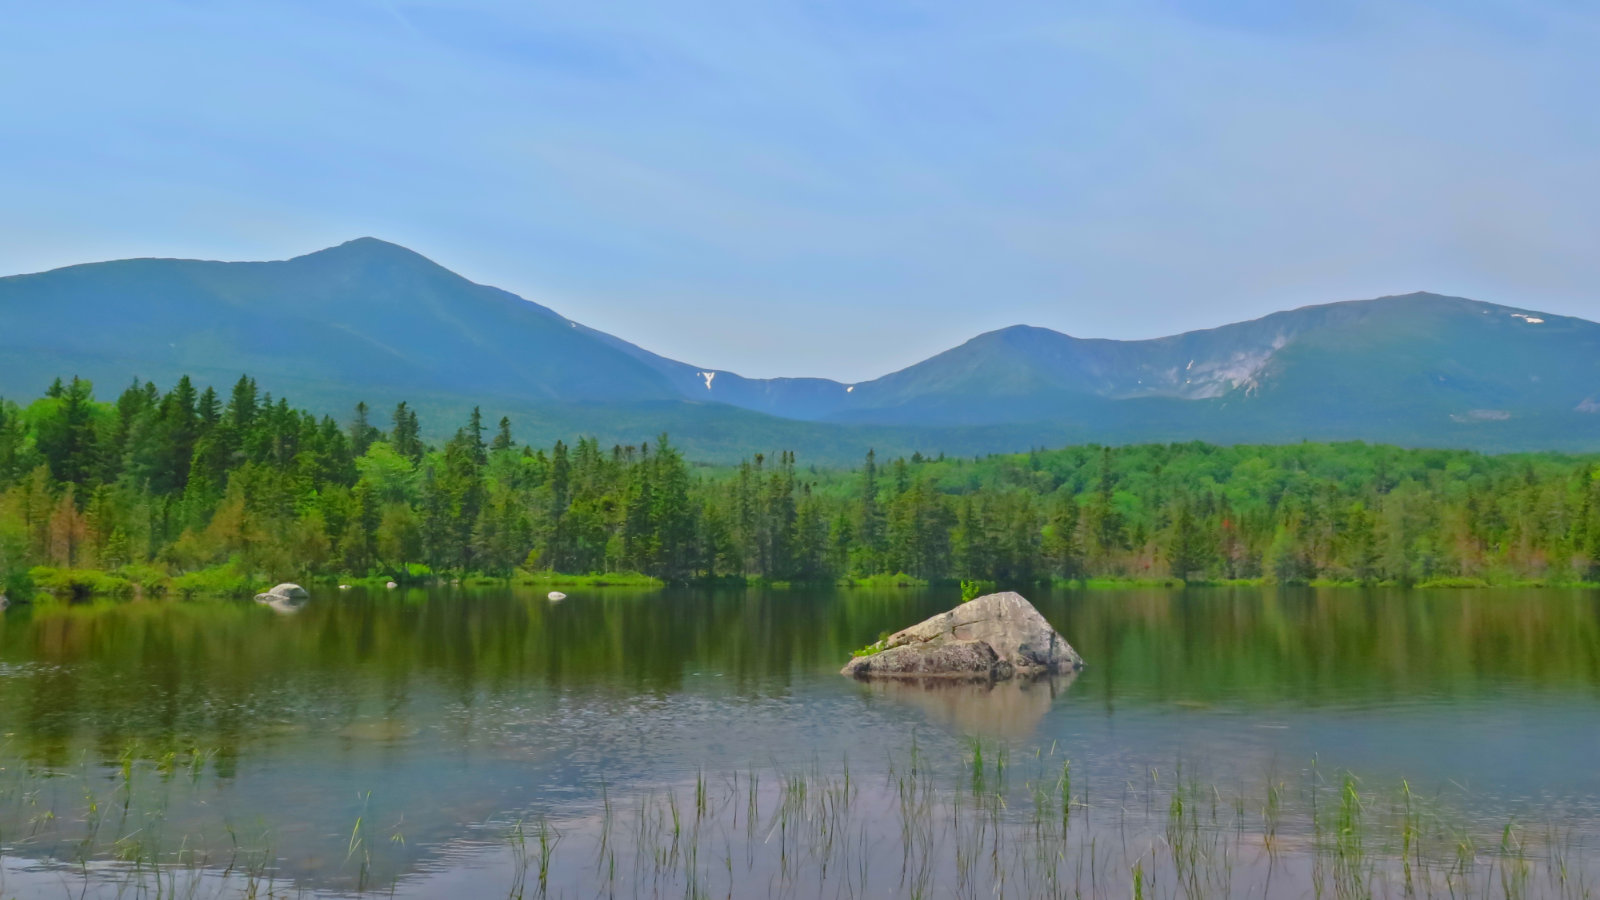 Katahdin-Hamlin-South-Turner-BSP-20190705